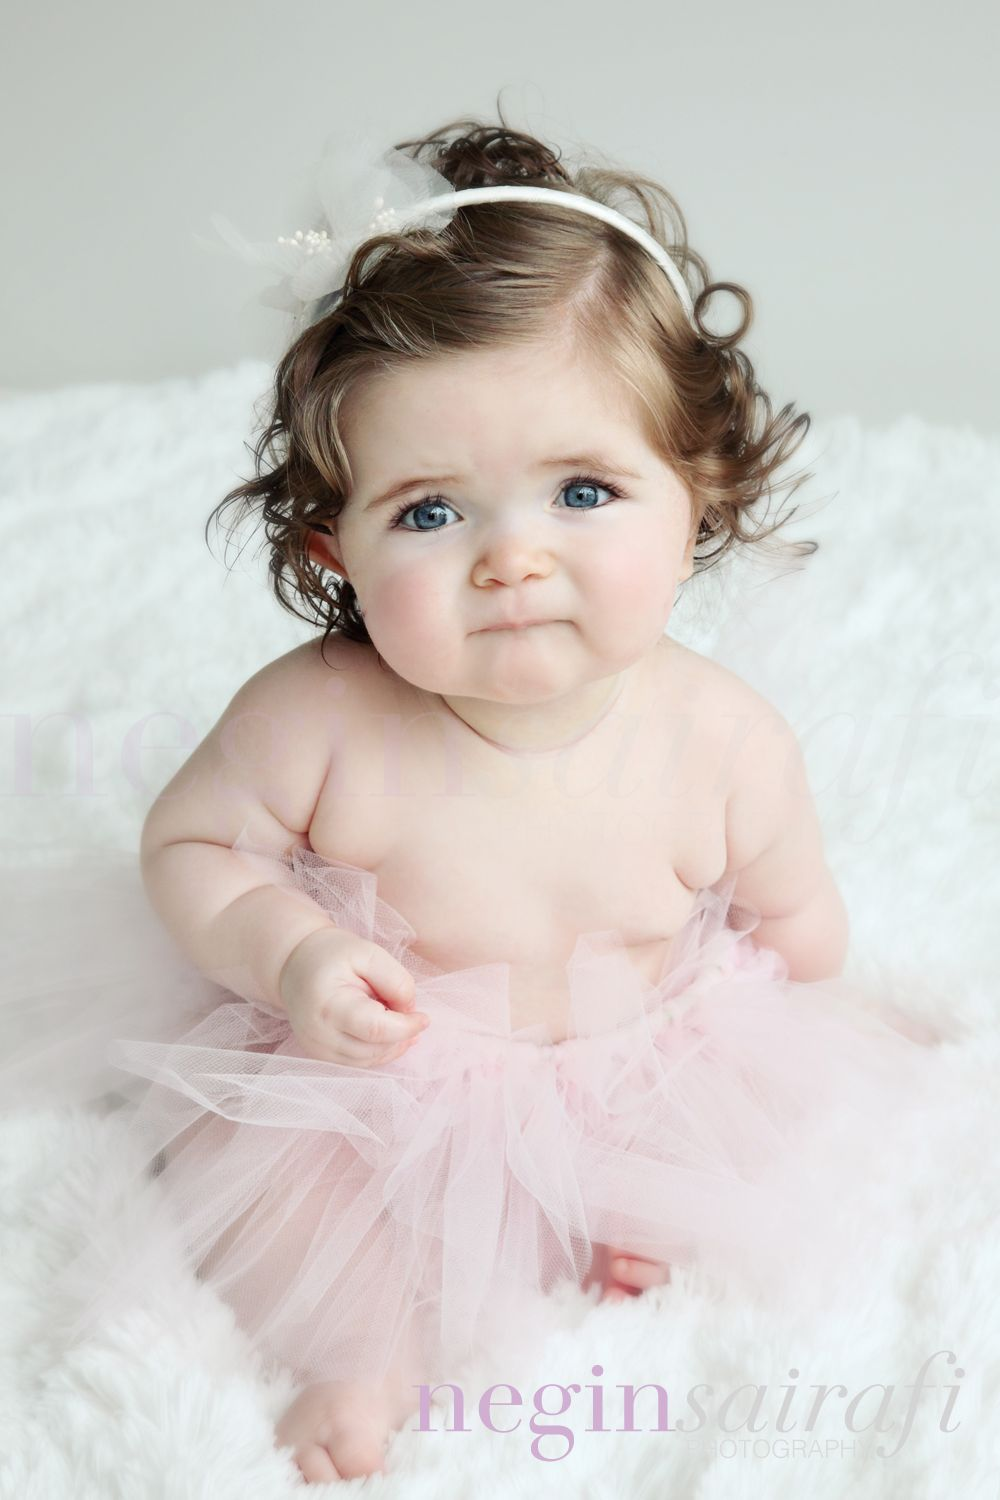 cutest baby ever! i melt every time i see this photo. | beautiful